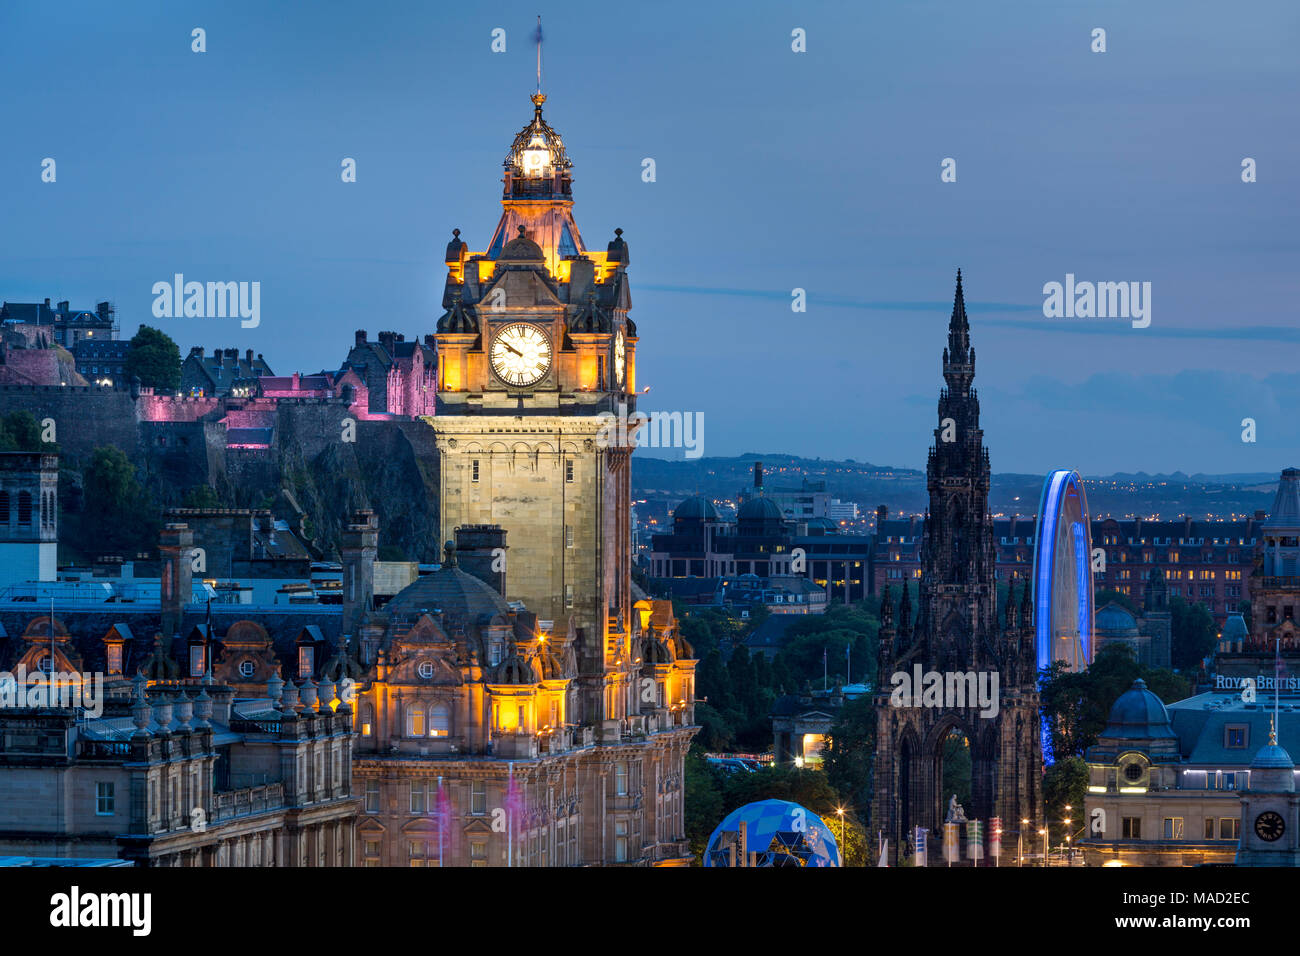 Twilight over Balmoral Hotel Tower, the old Castle and city of Edinburgh, Lothian, Scotland - Stock Image